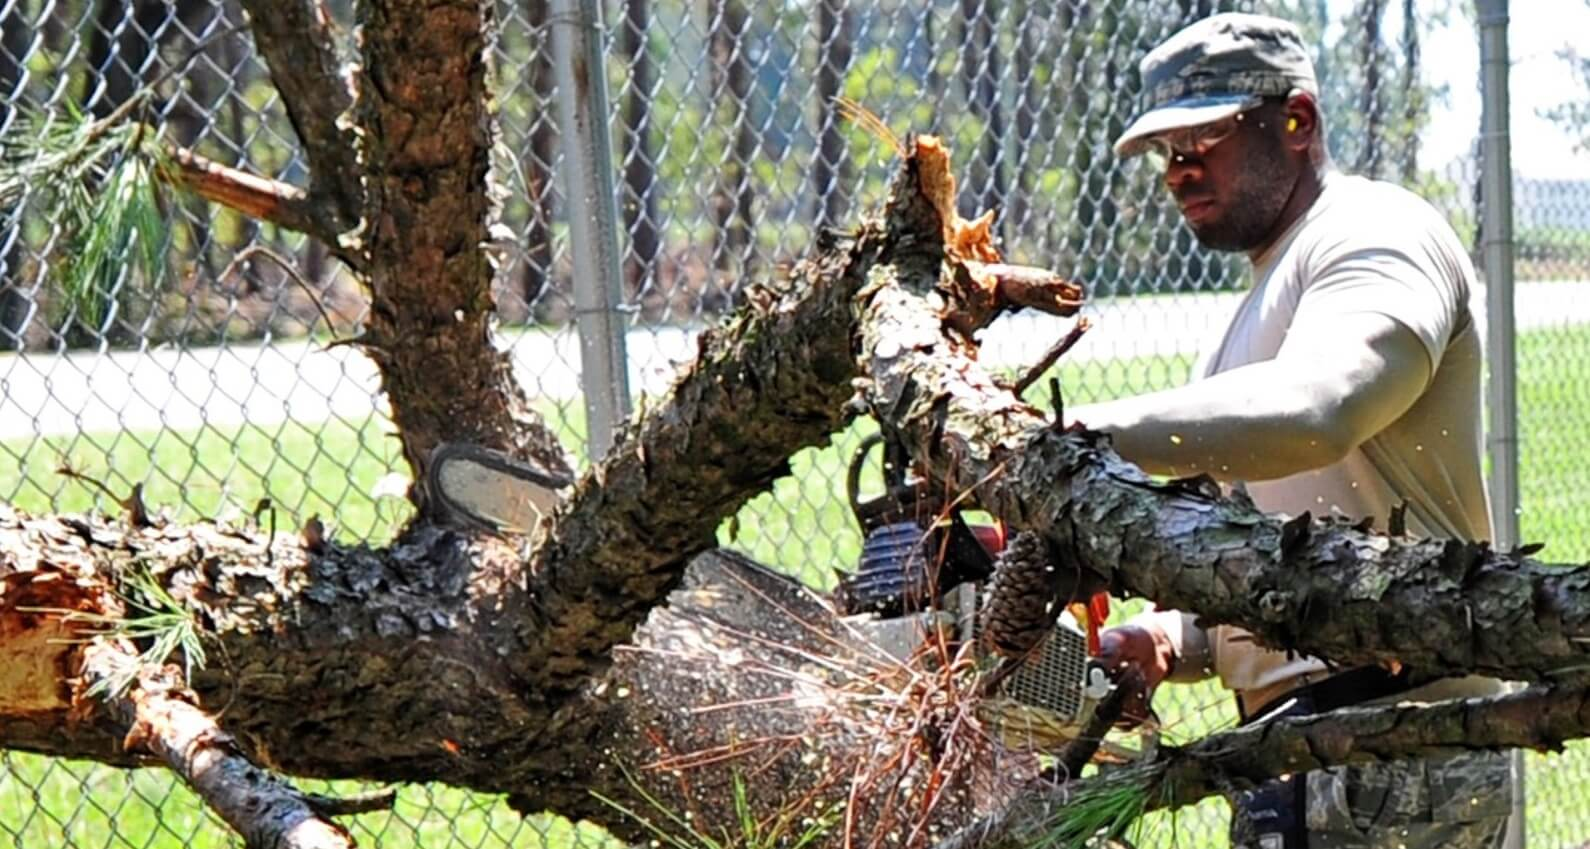 Fayetteville, North Carolina-Fayetteville Tree Trimming and Stump Grinding Services-We Offer Tree Trimming Services, Tree Removal, Tree Pruning, Tree Cutting, Residential and Commercial Tree Trimming Services, Storm Damage, Emergency Tree Removal, Land Clearing, Tree Companies, Tree Care Service, Stump Grinding, and we're the Best Tree Trimming Company Near You Guaranteed!